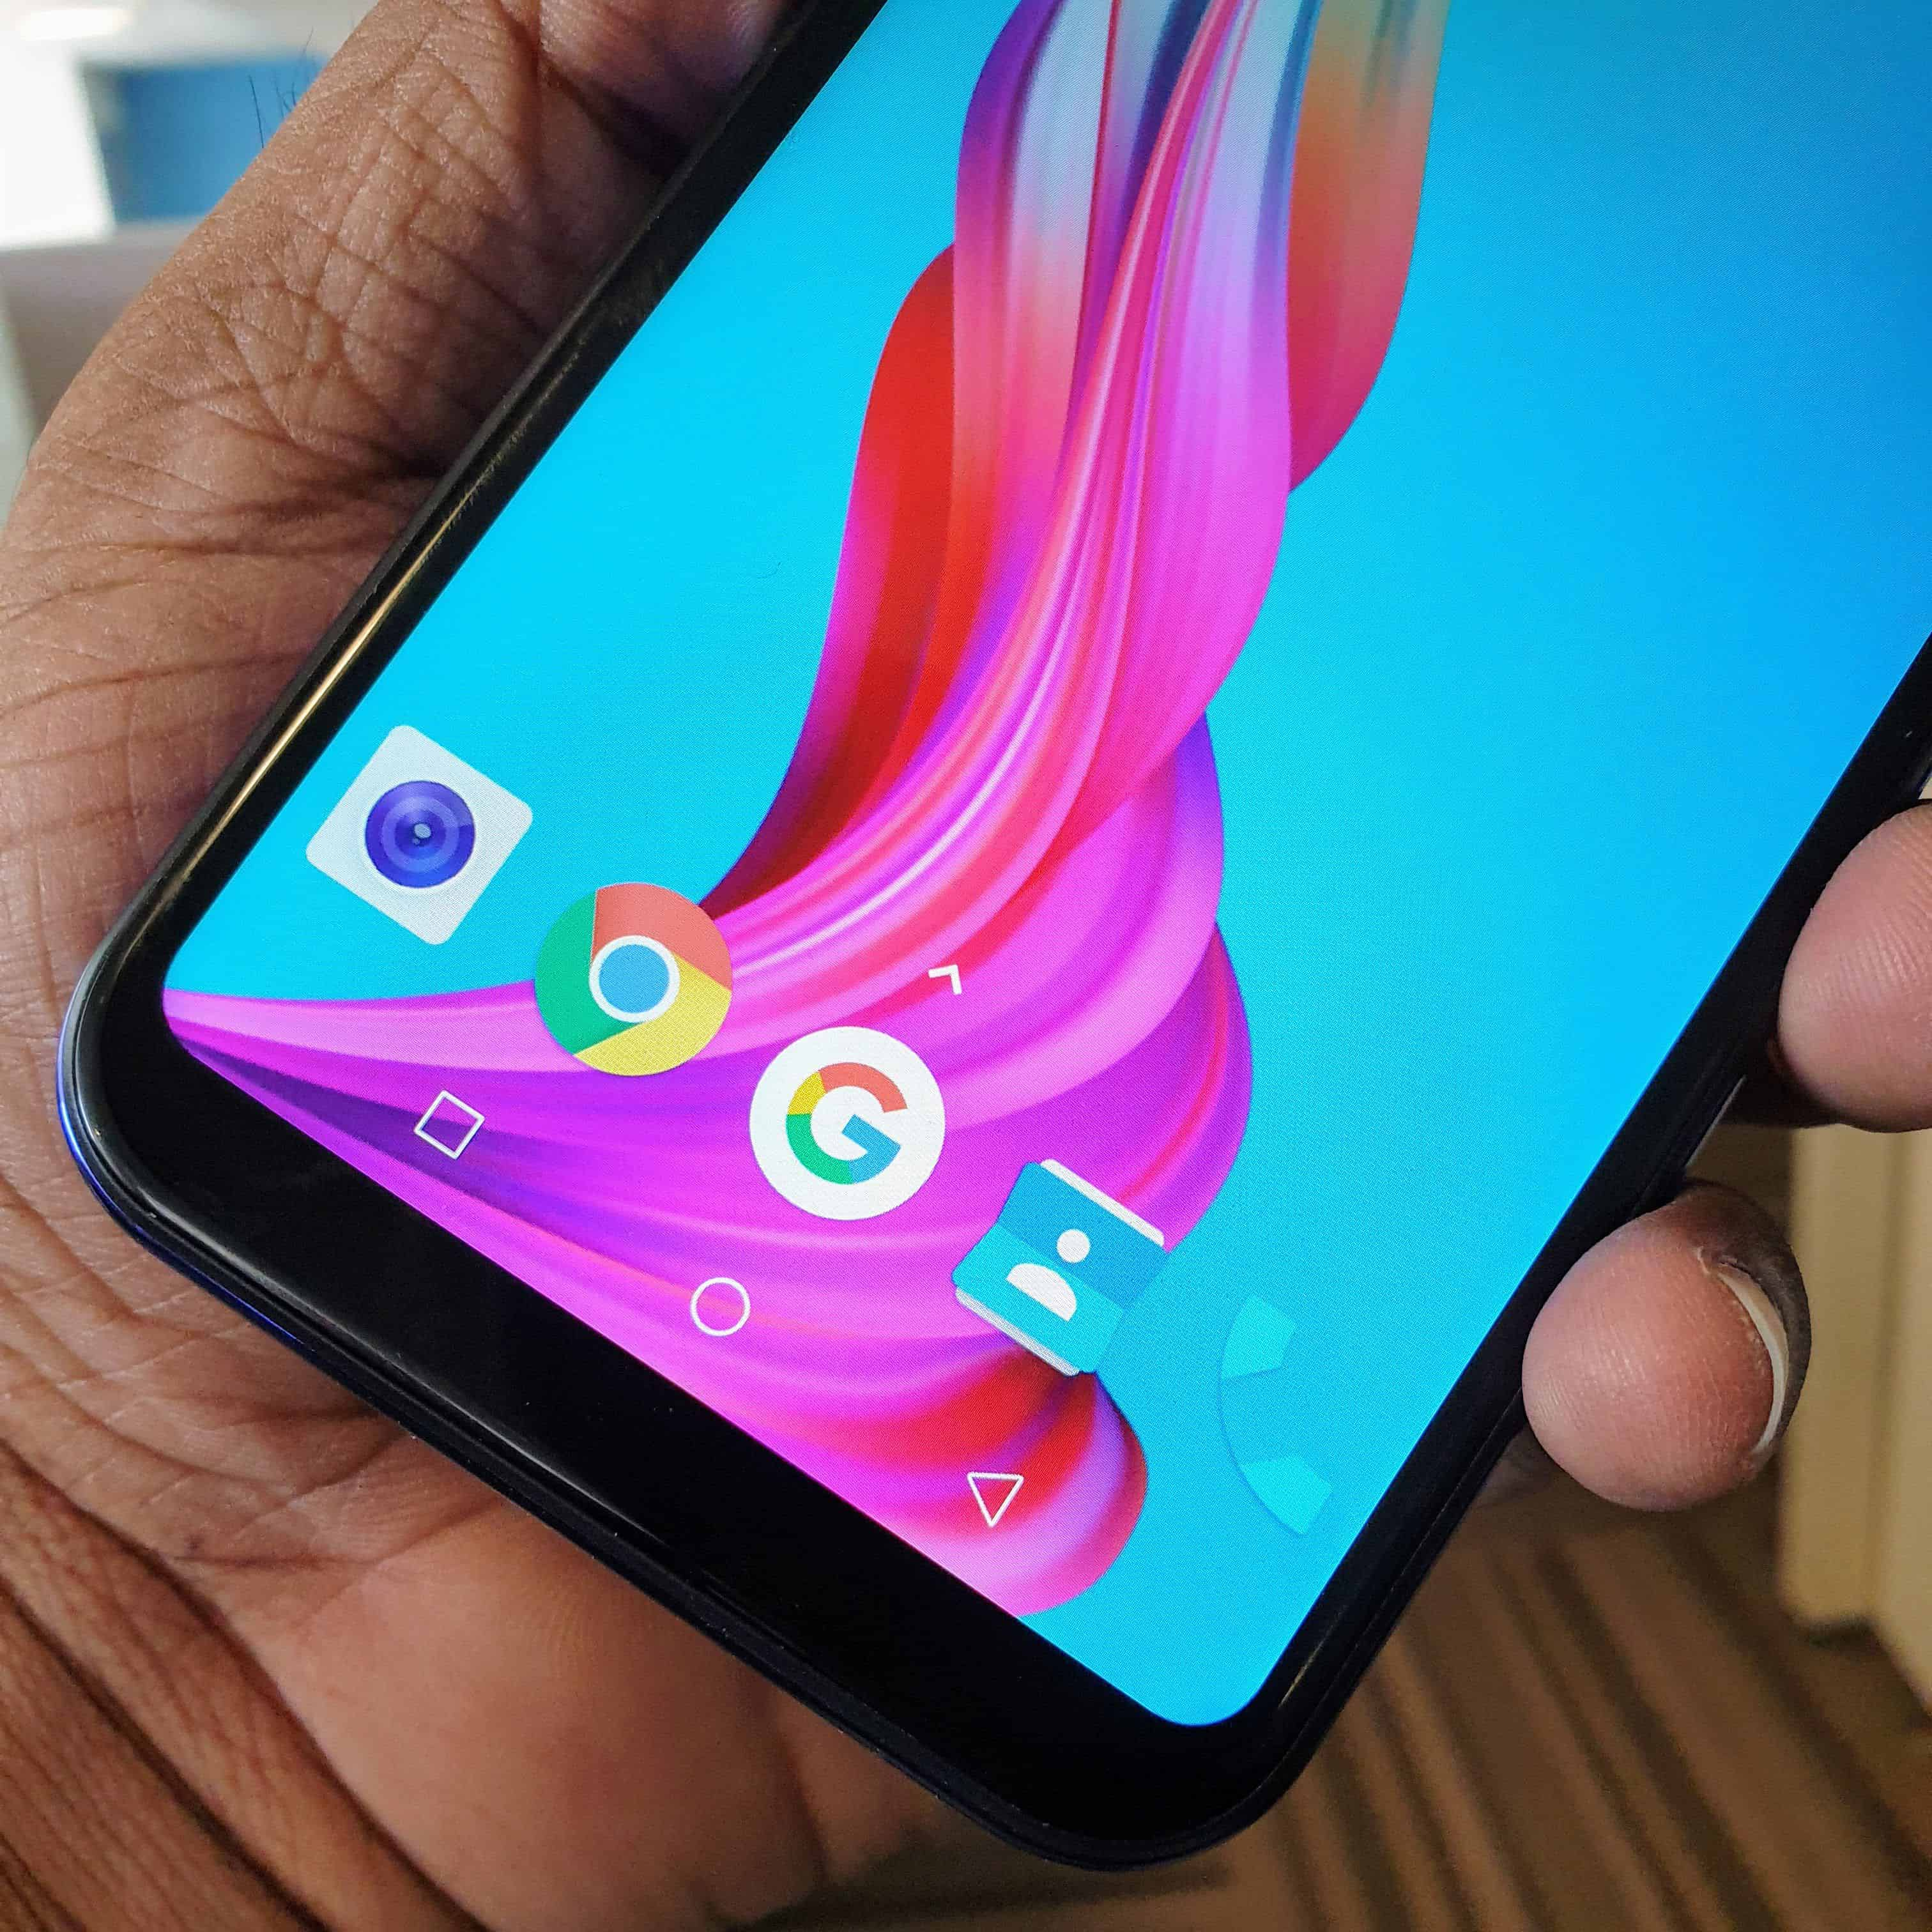 Coolpad Cool 3 Plus Review - Should You Buy this Entry-level Phone? - 3